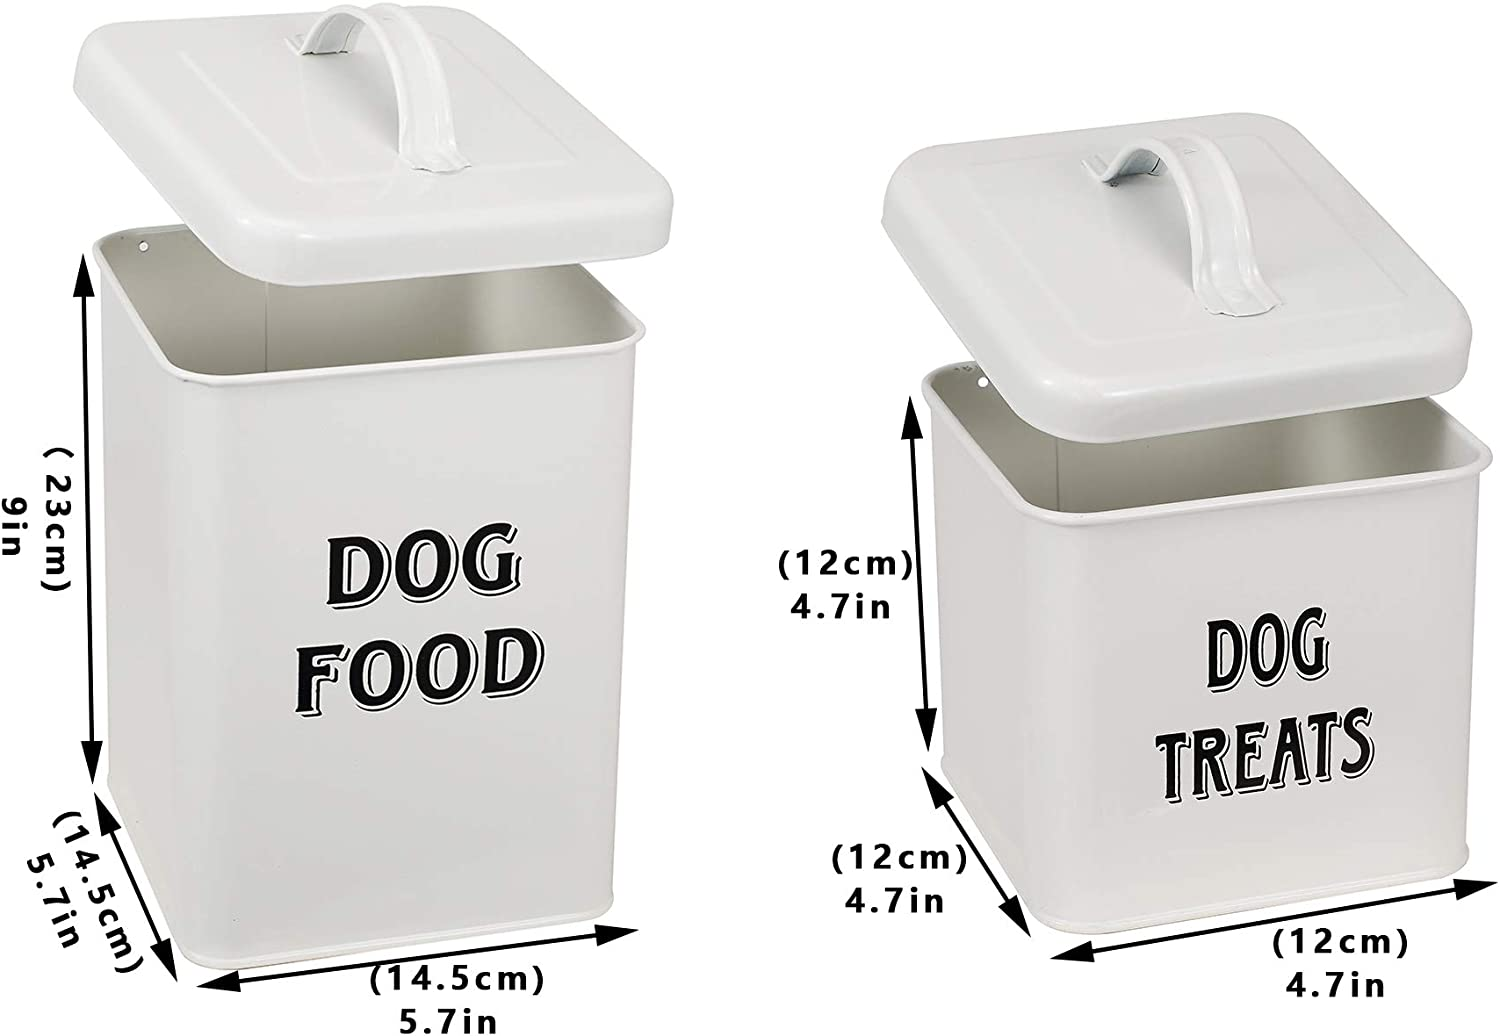 Pet Supplies : Pethiy Dog Food and Treats Containers Set with Scoop for Dogs-Vintage White Powder-Coated Carbon Steel - Tight Fitting Lids - Storage Canister Tins Small-White :